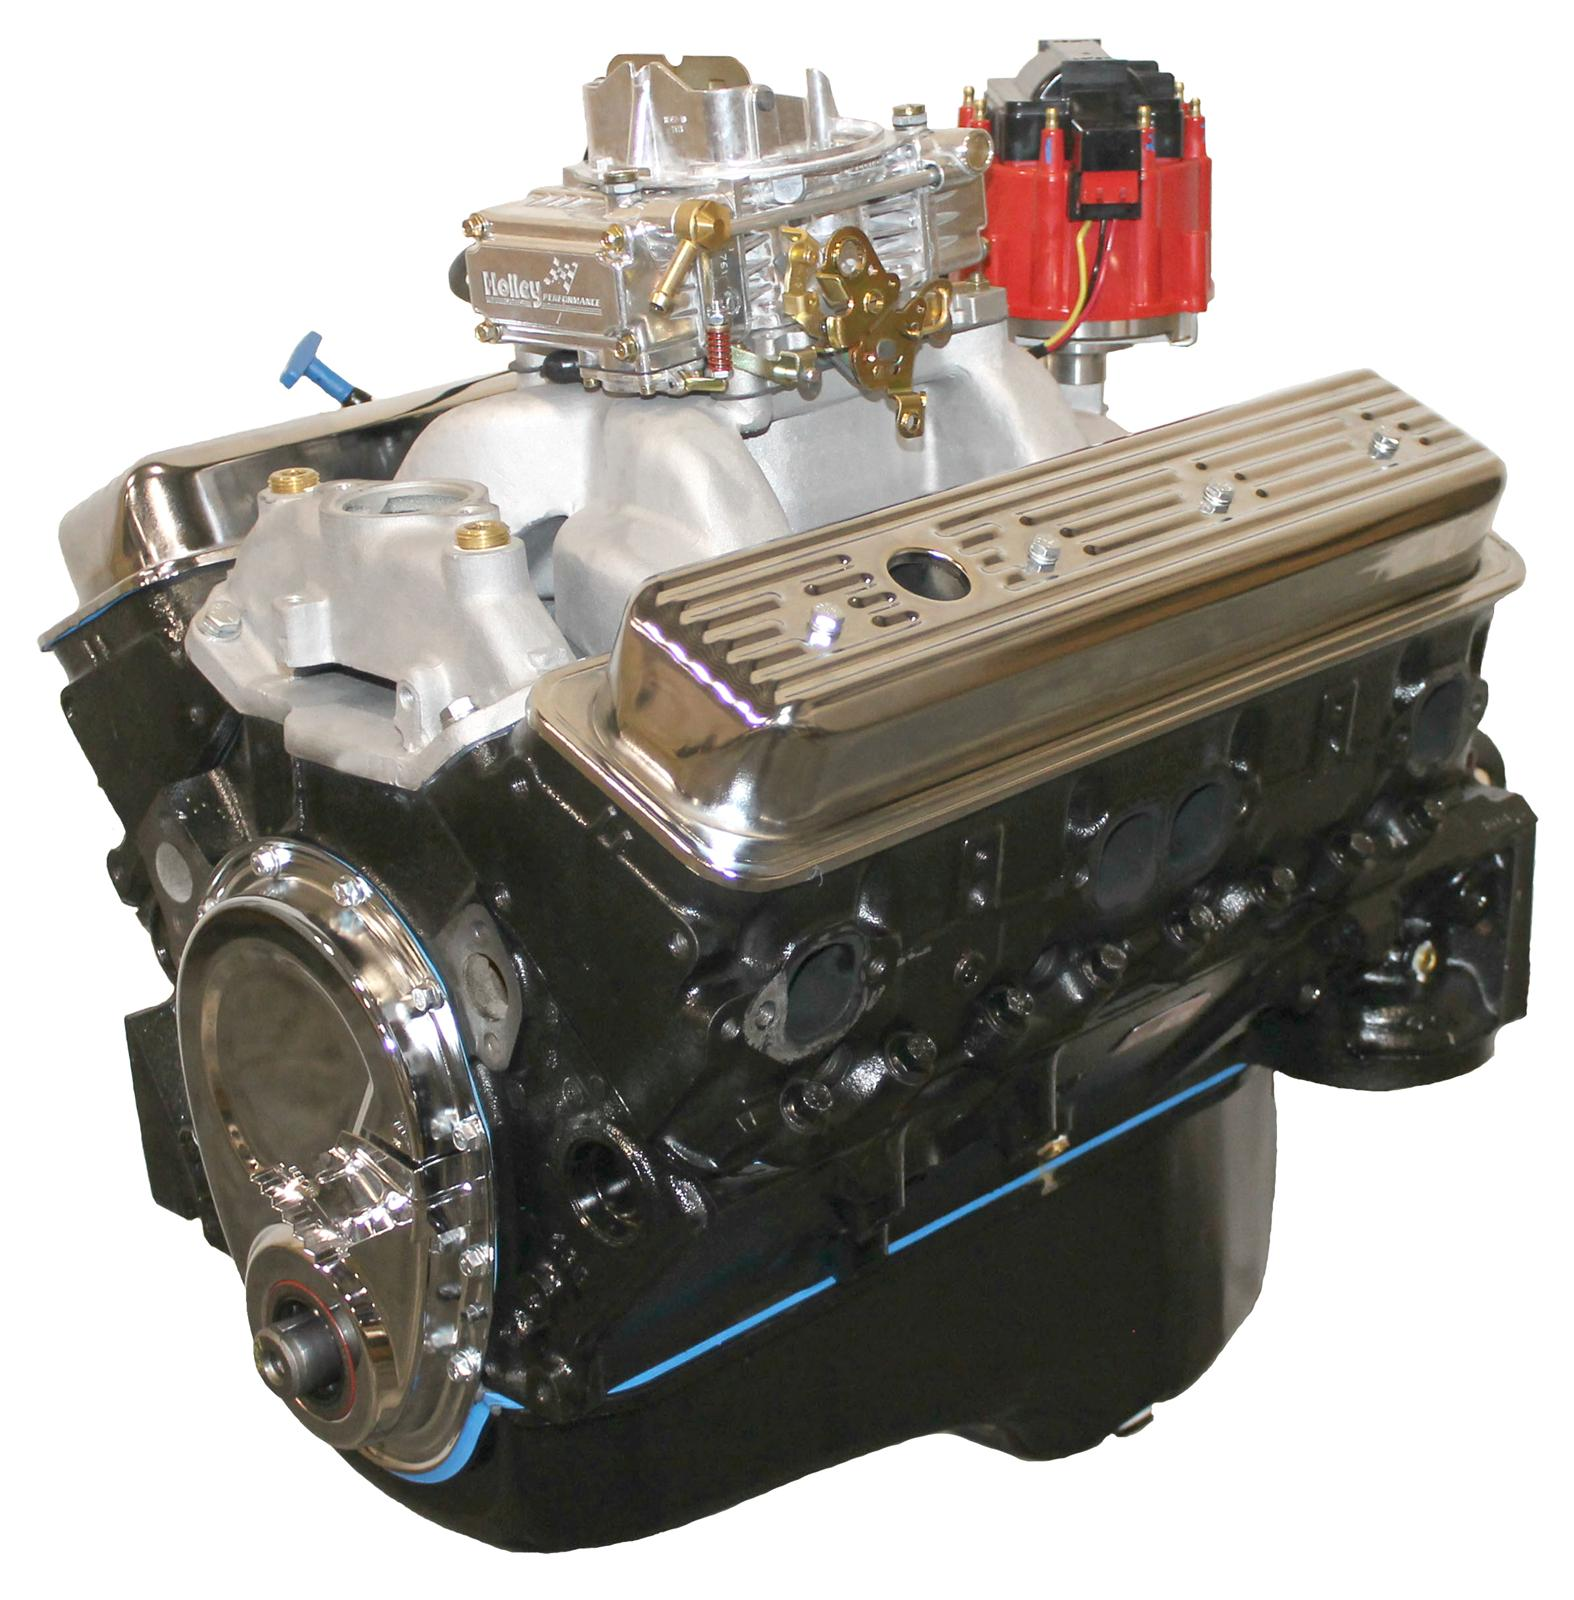 Blueprint engines crate engine bp3830ctc1s ebay store categories malvernweather Choice Image